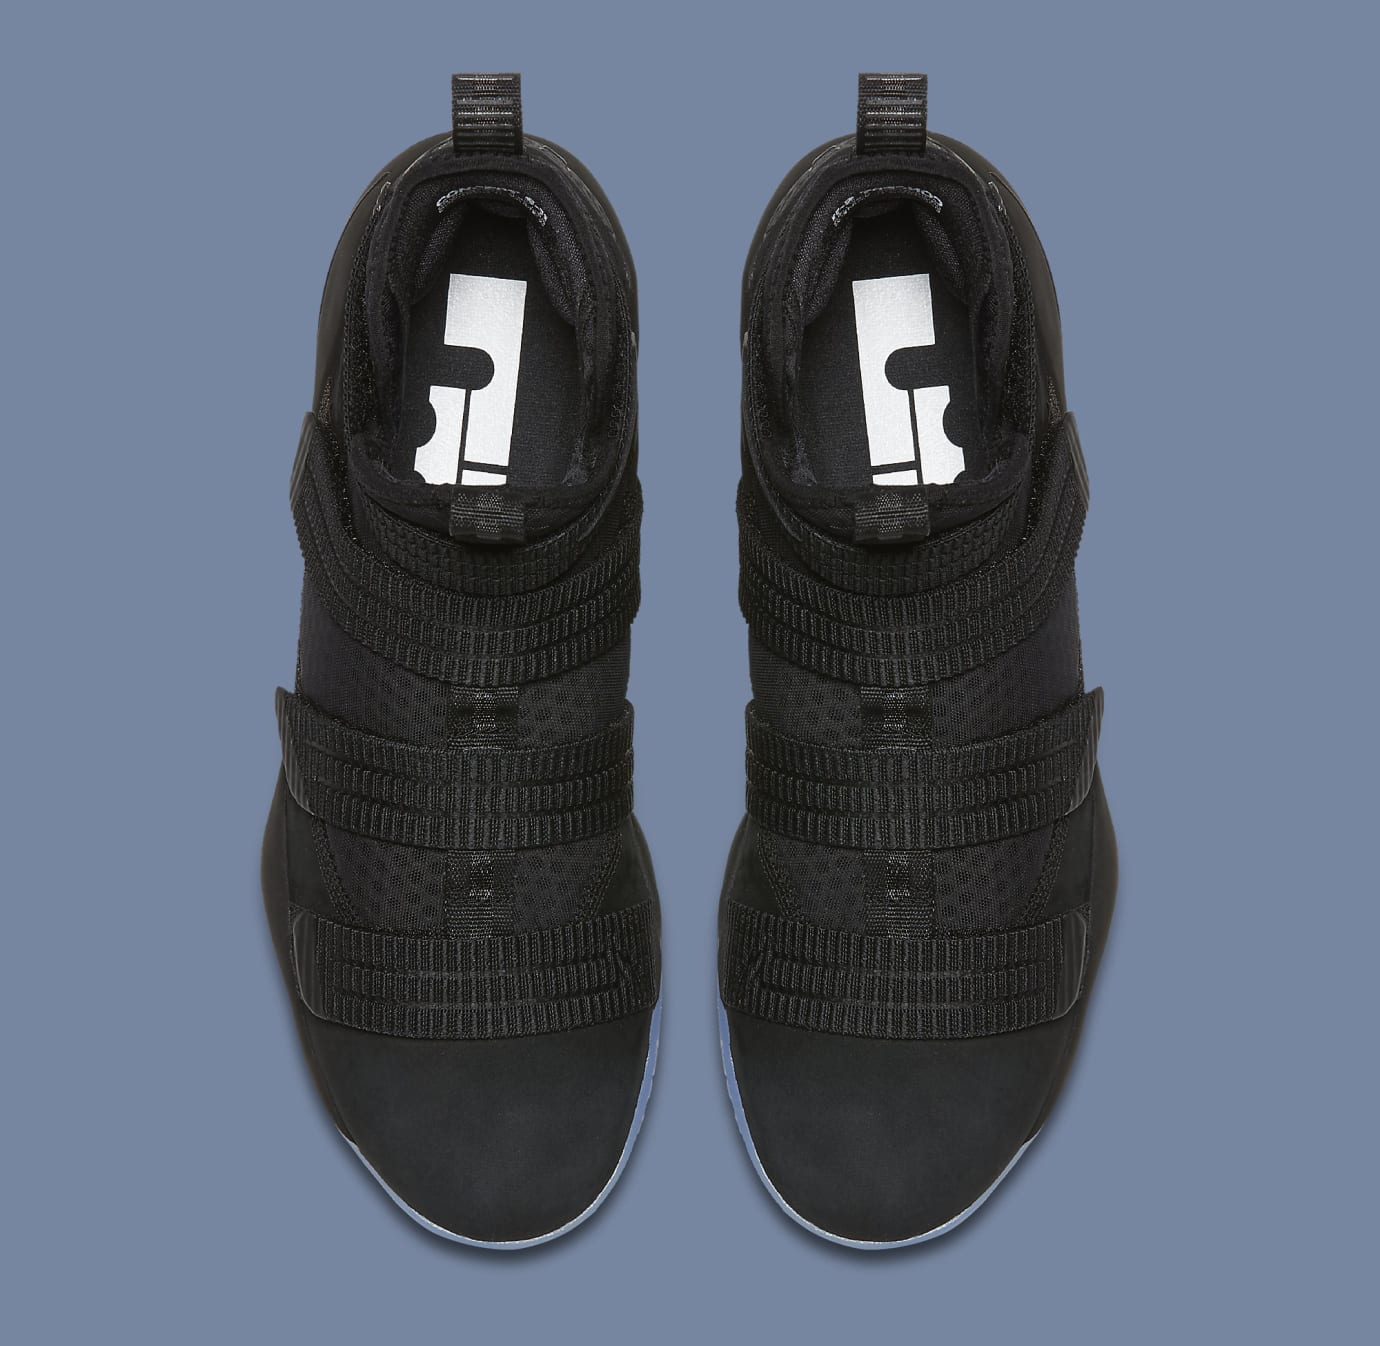 ca953e73882ee Black Ice Nike LeBron Soldier 11 897646-001 Strive for Greatness ...